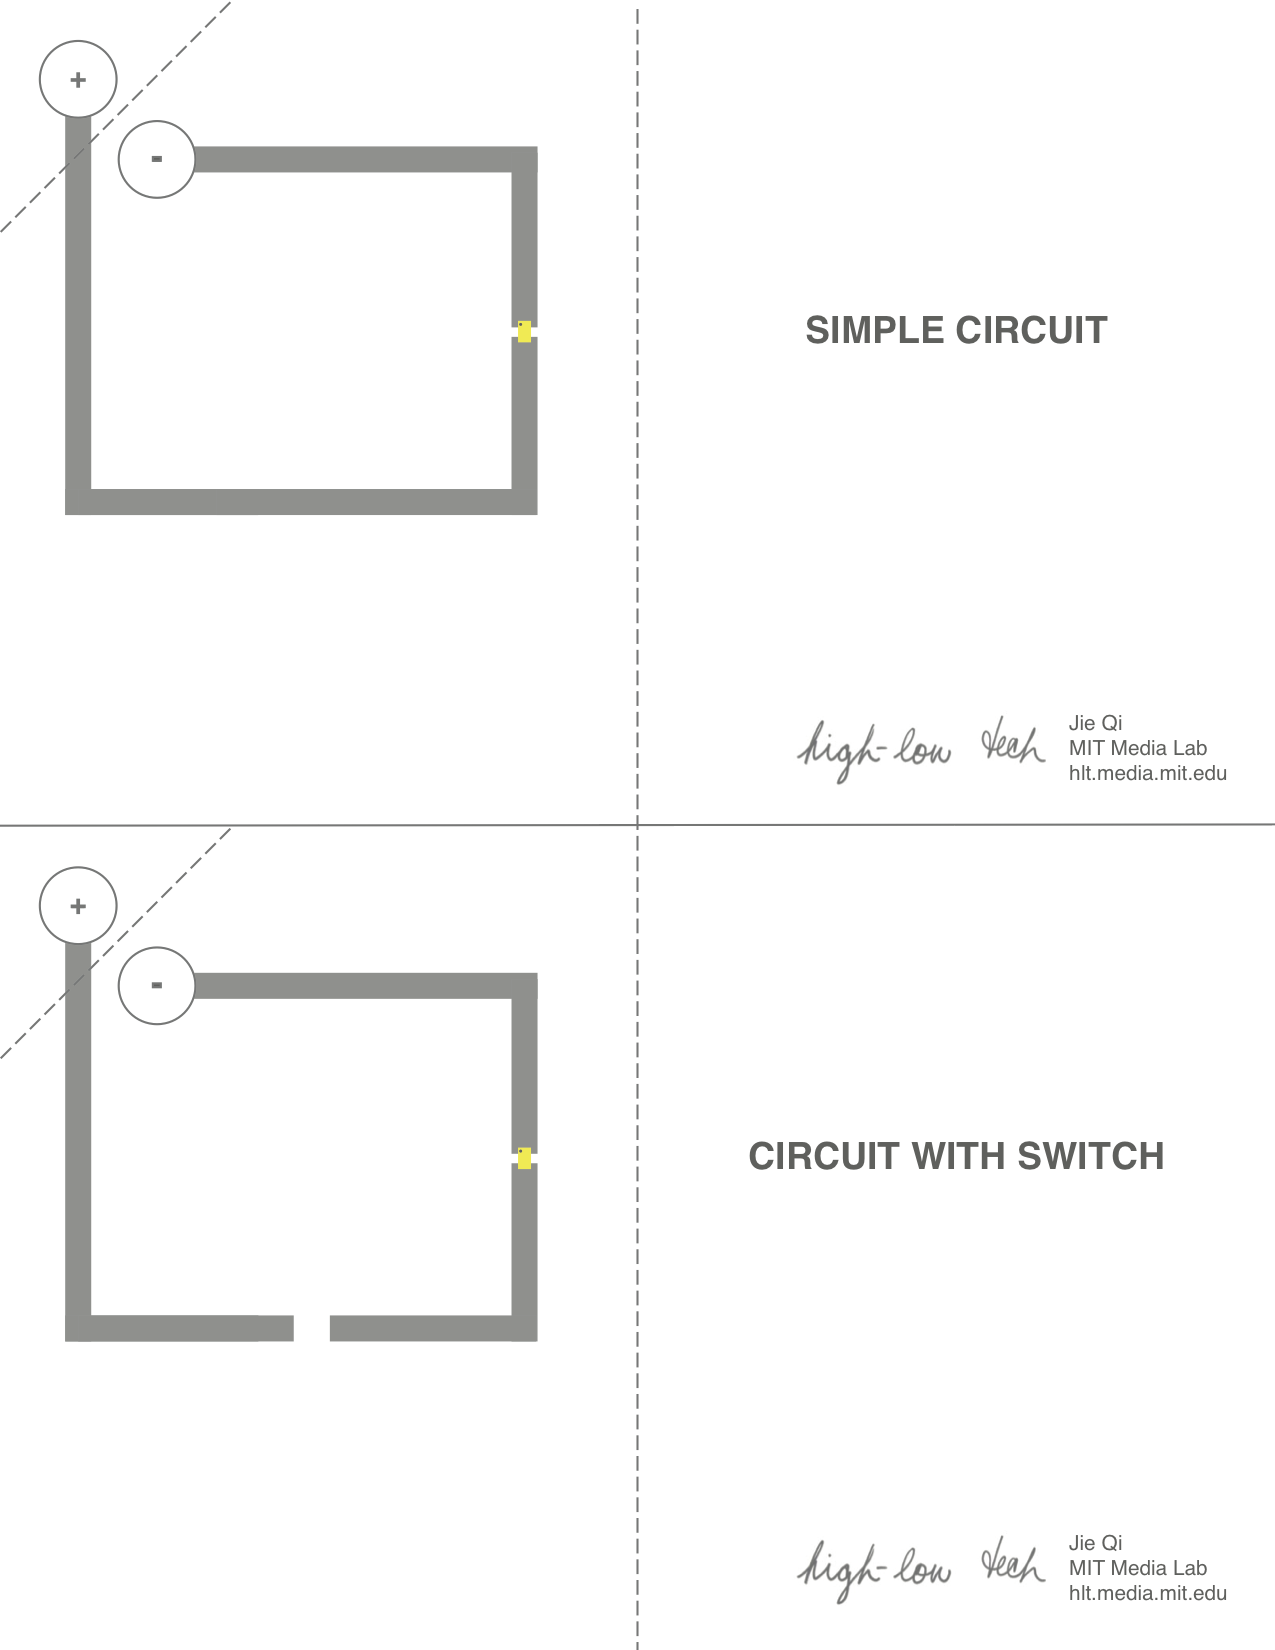 High Low Tech Paper Circuits Simple Push Button Switch Wiring Diagram Electrical Connections